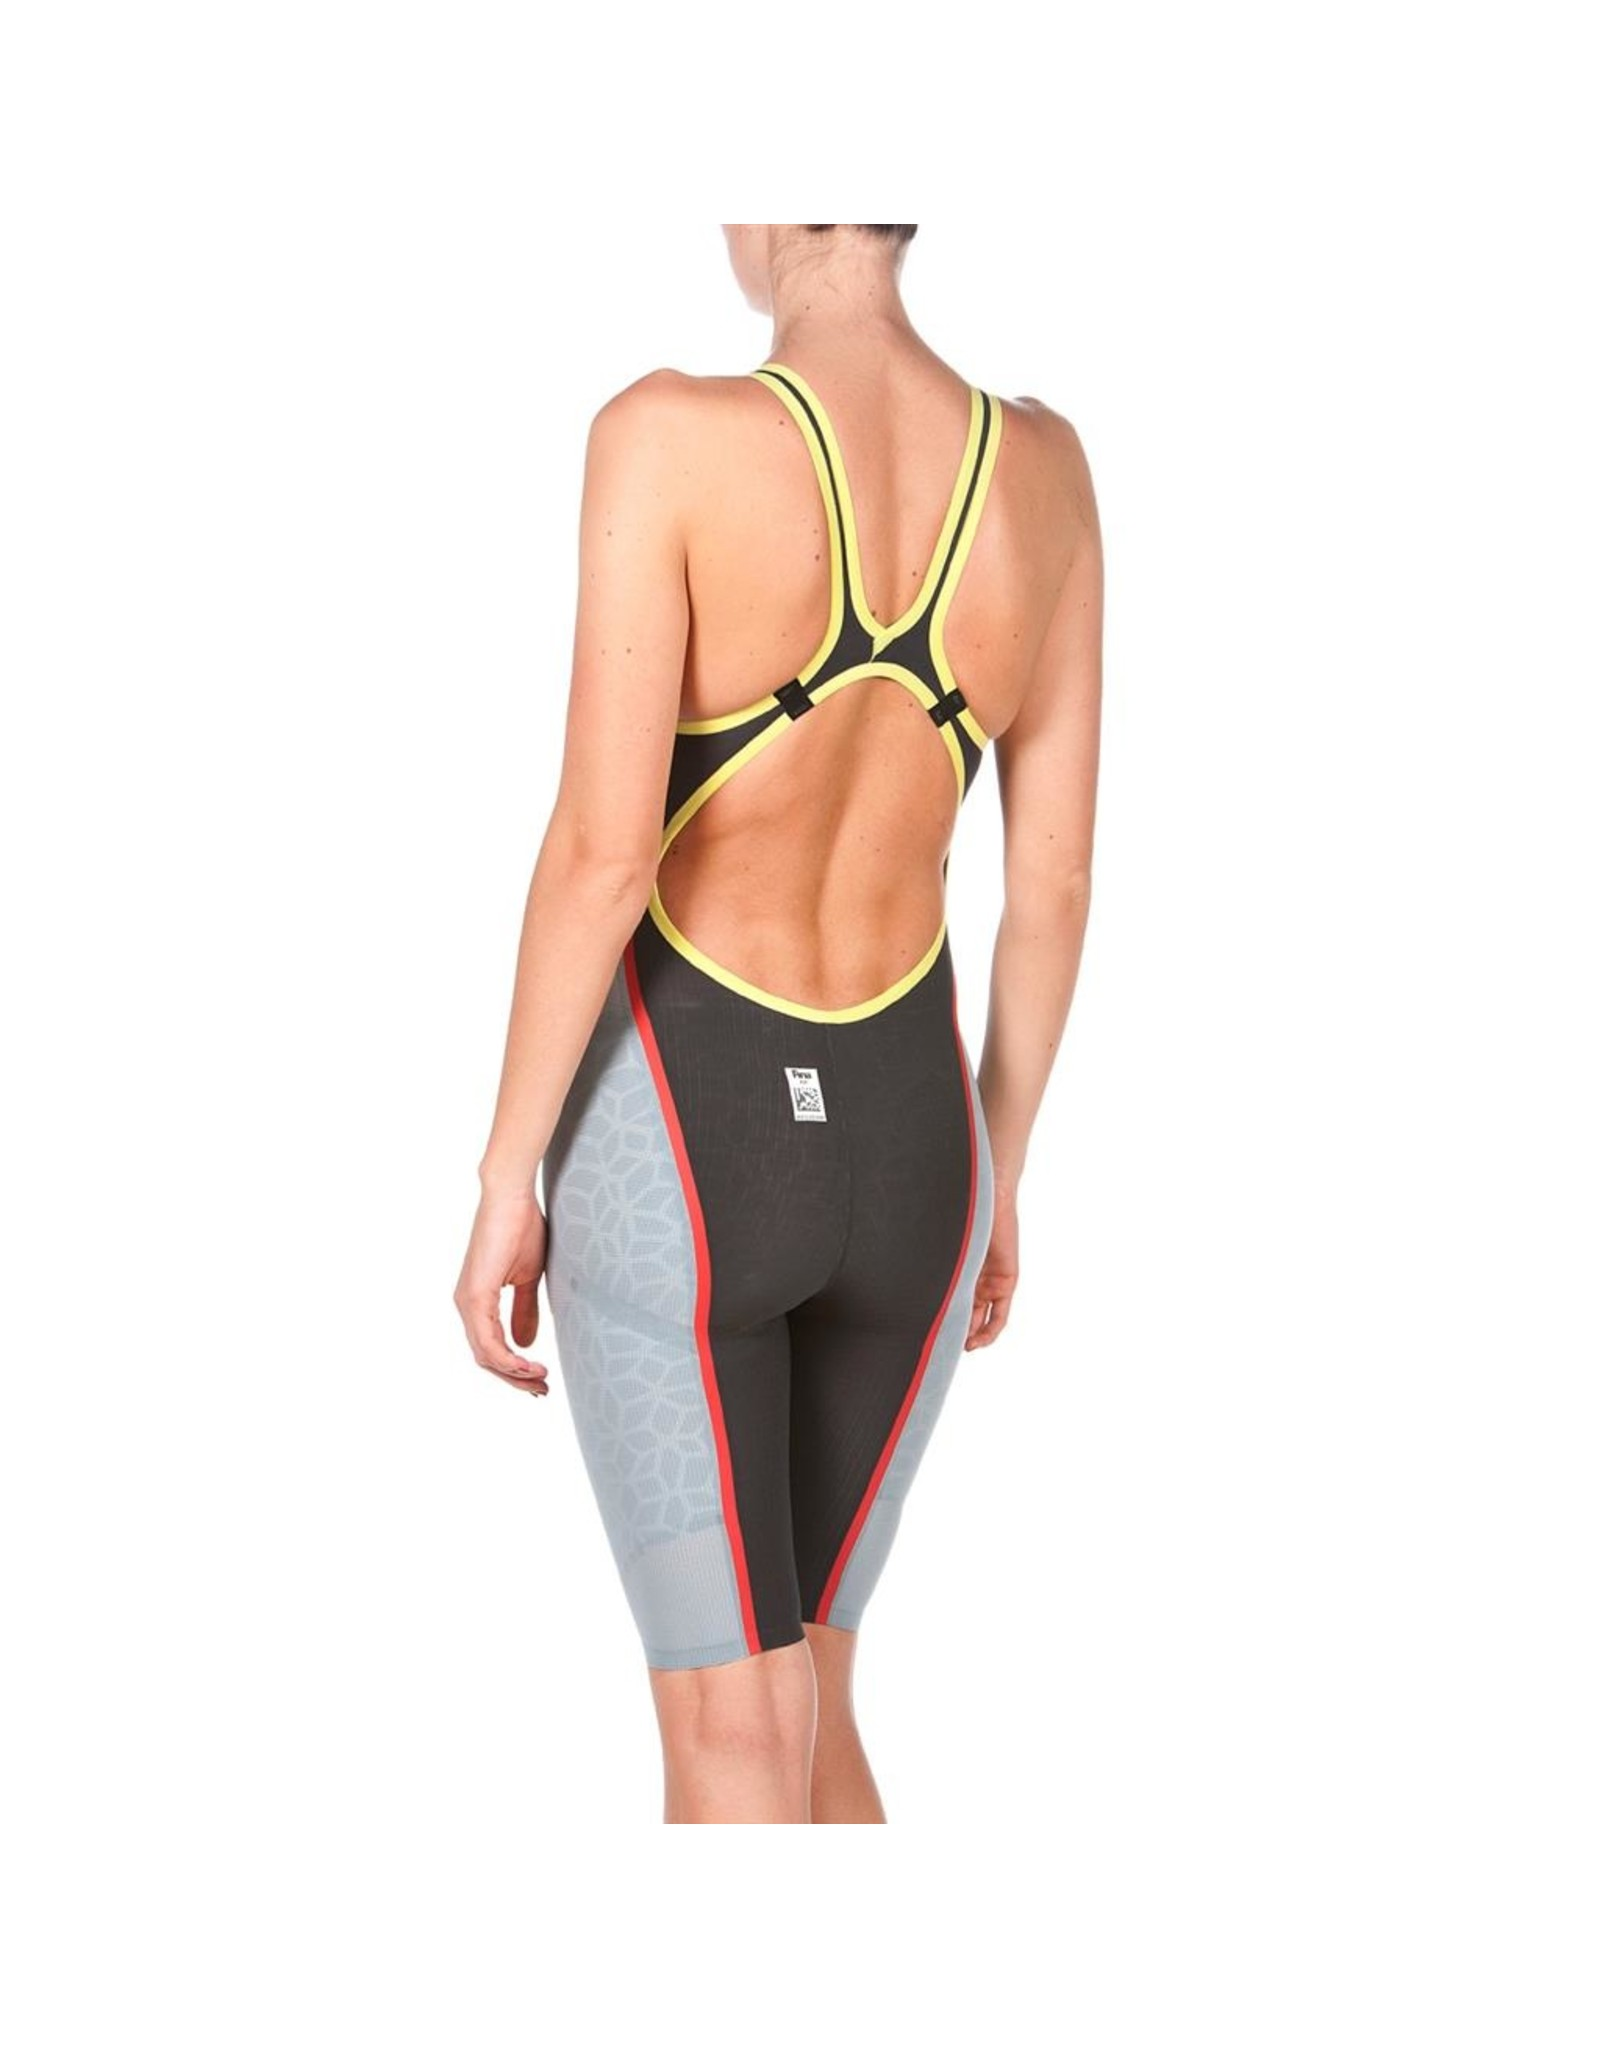 ARENA ARENA CARBON ULTRA OPEN BACK FEMALE